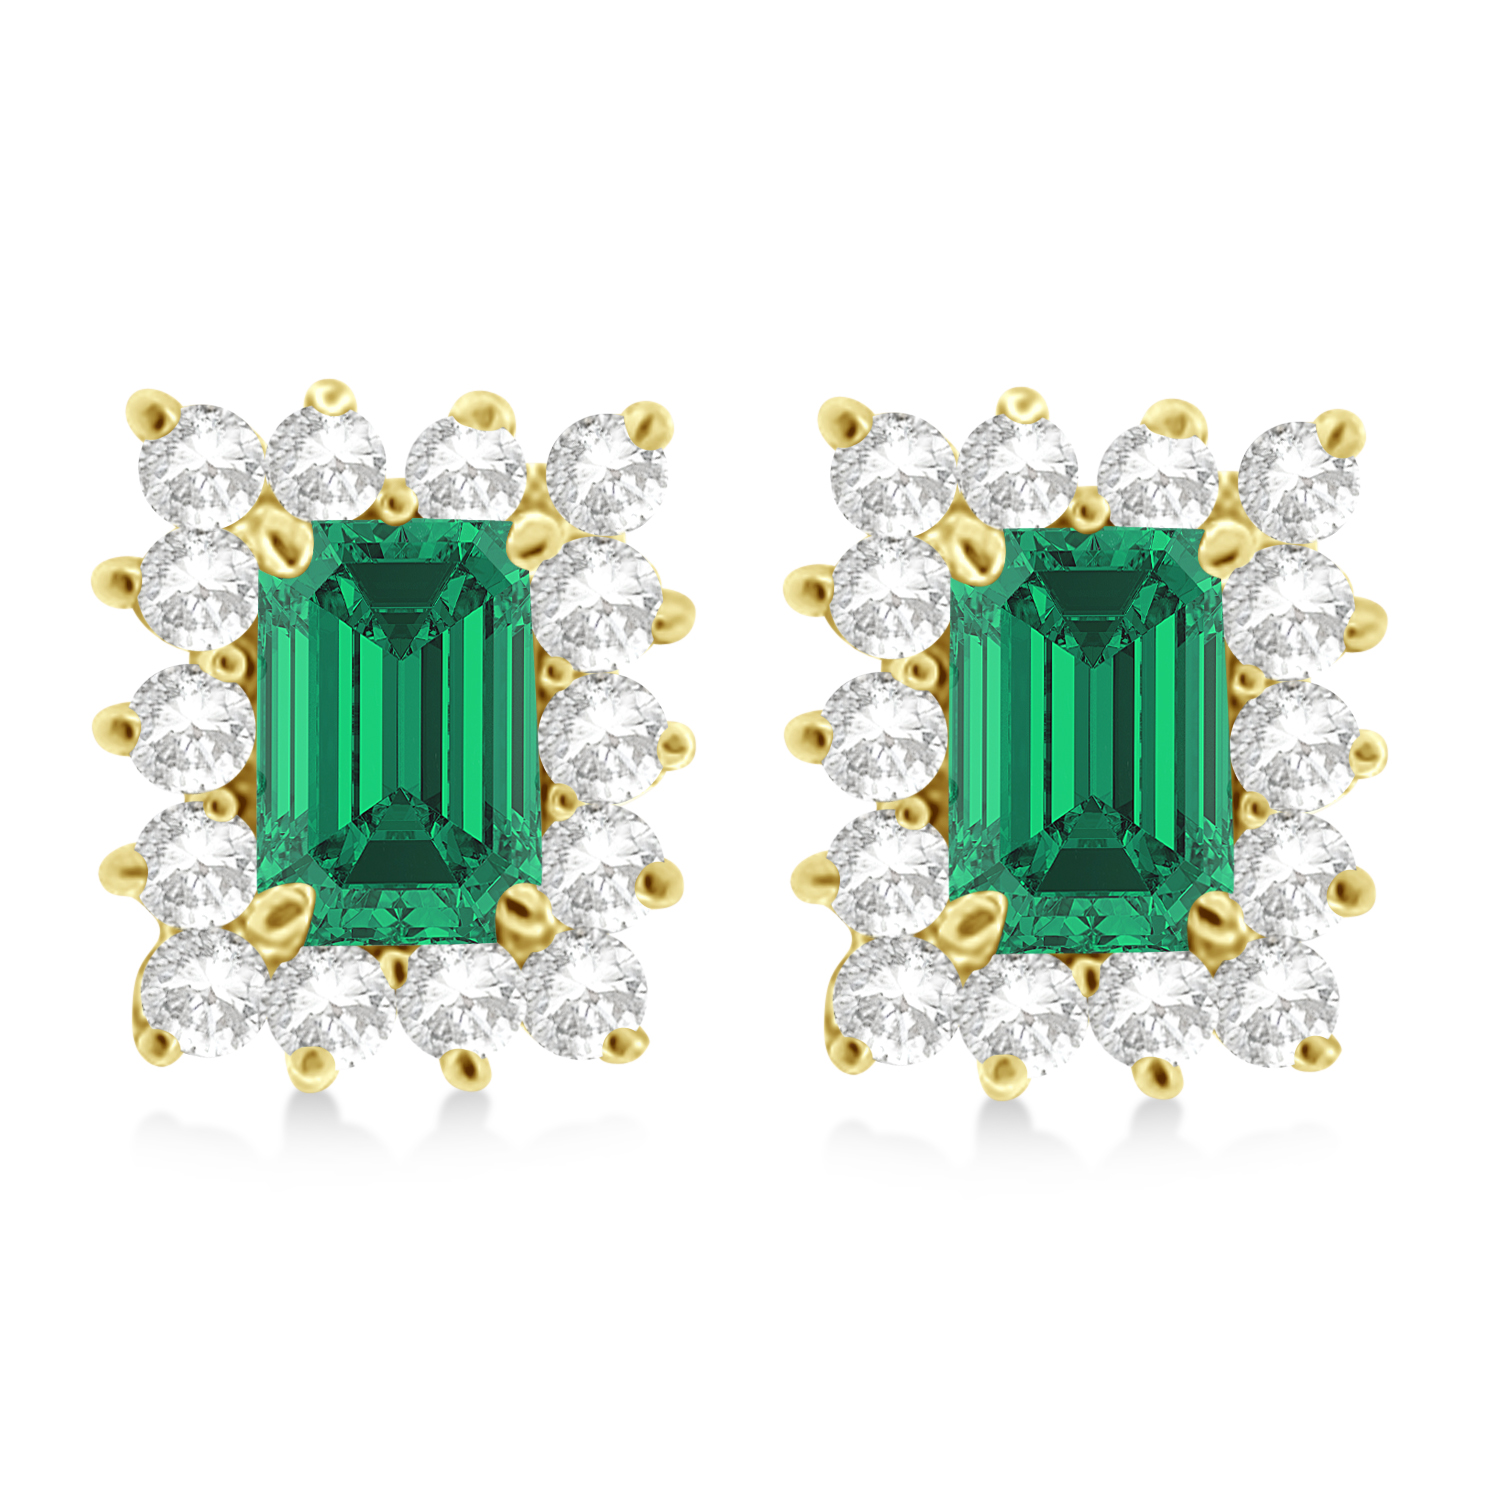 Emerald-Cut Emerald & Diamond Stud Earrings 14k Yellow Gold (1.80ctw)